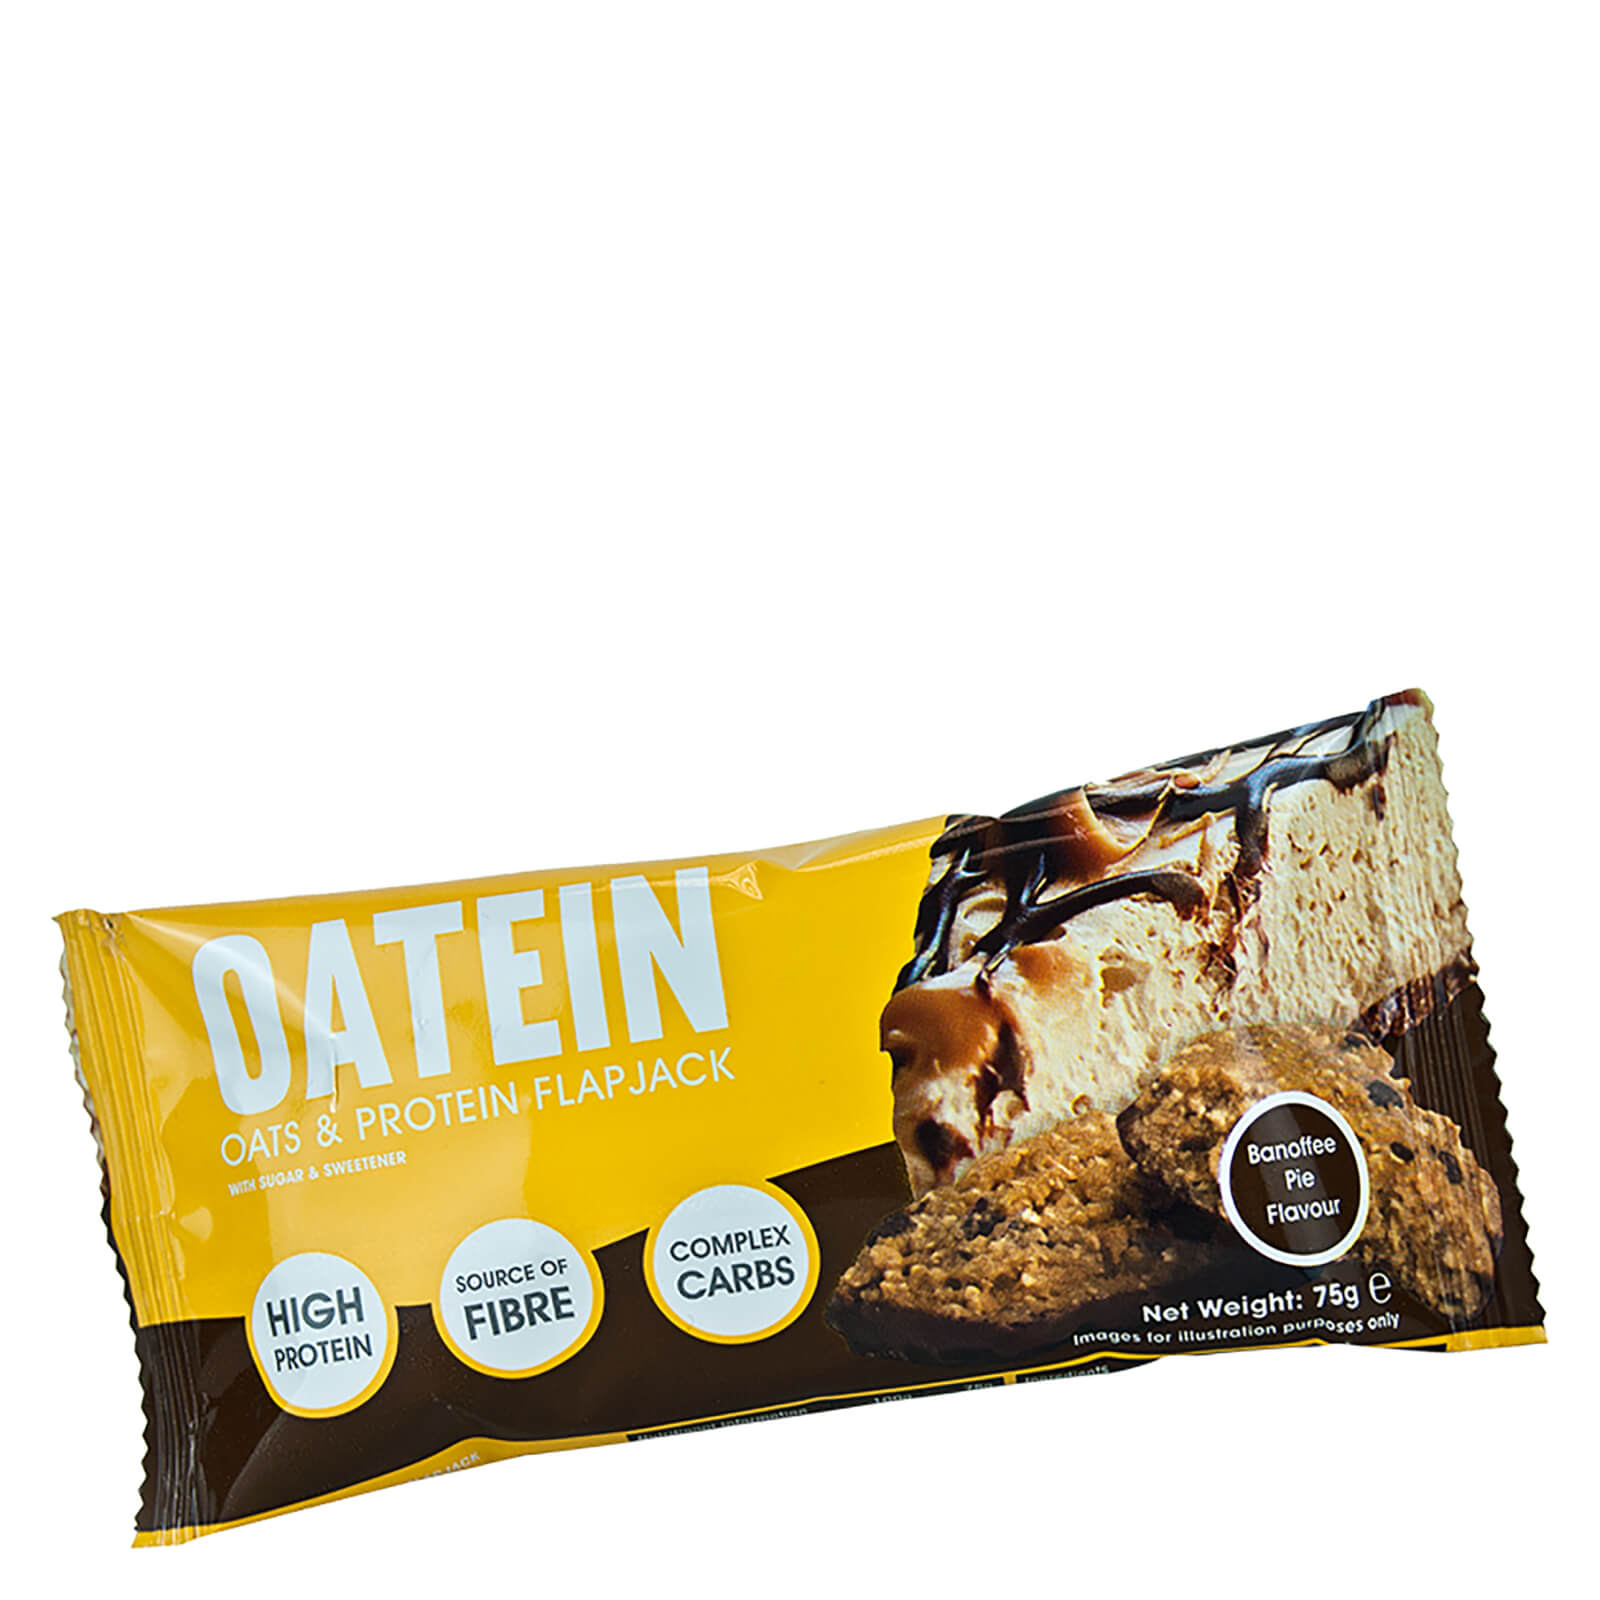 Oatein Banoffee Pie Flapjack Bar